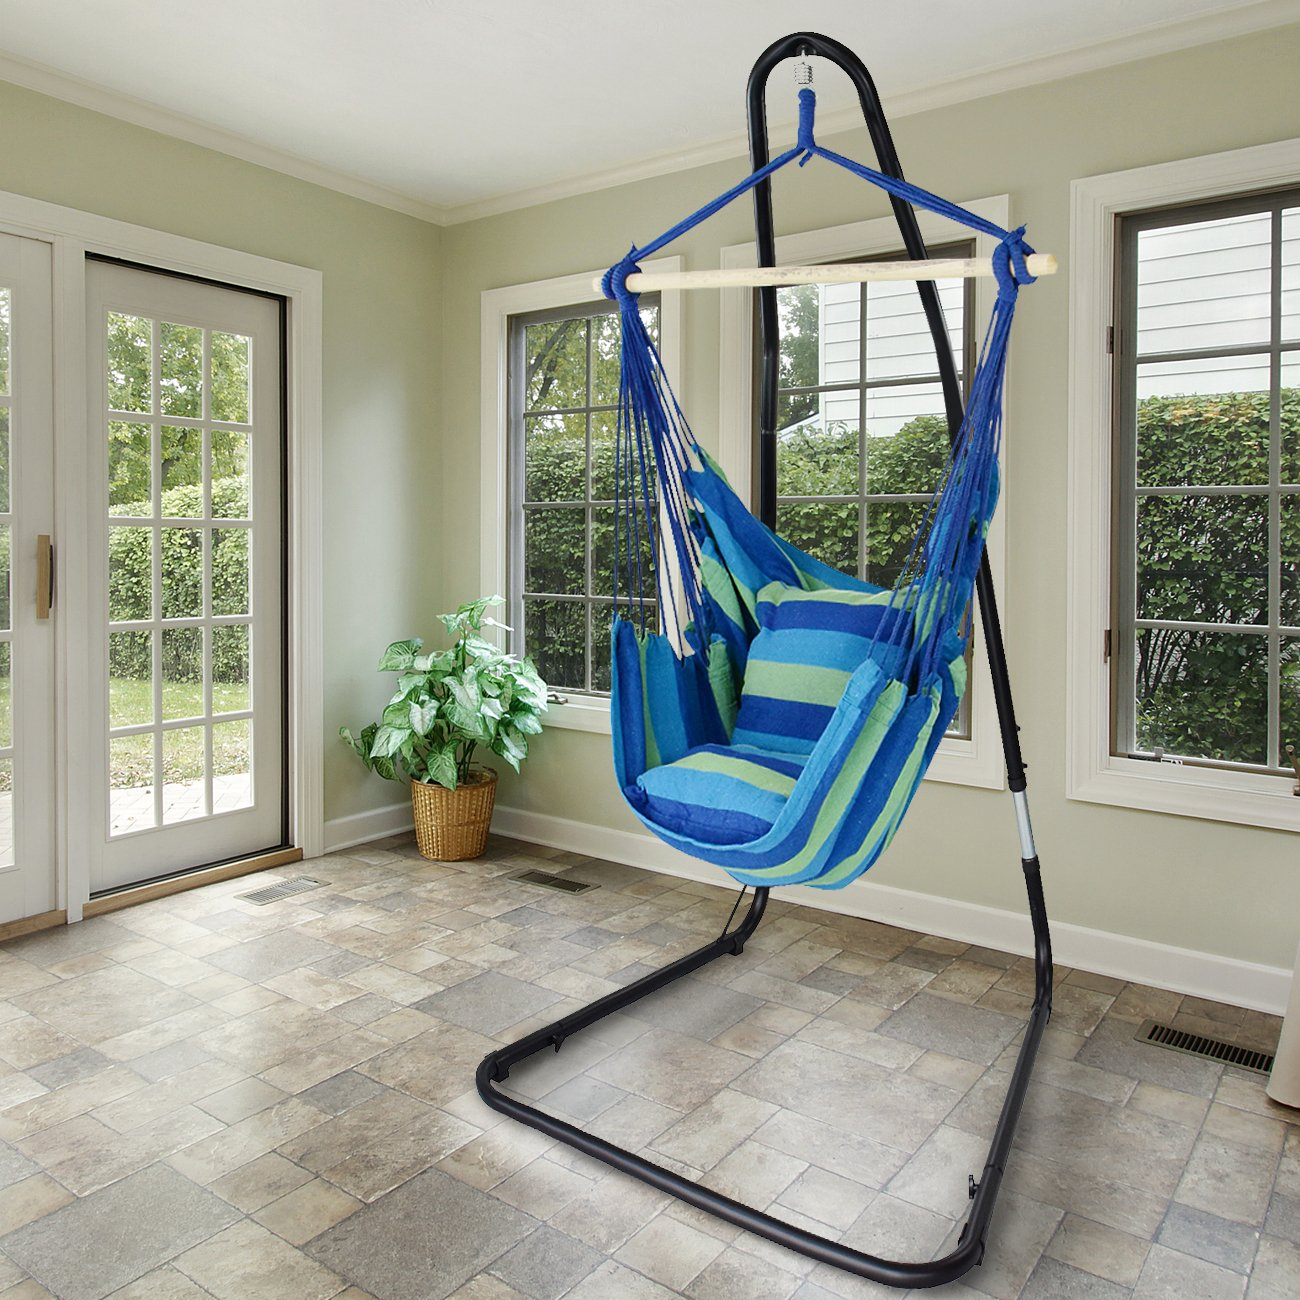 cheap-hammock-chair-with-metal-stand-included-for-bedroom